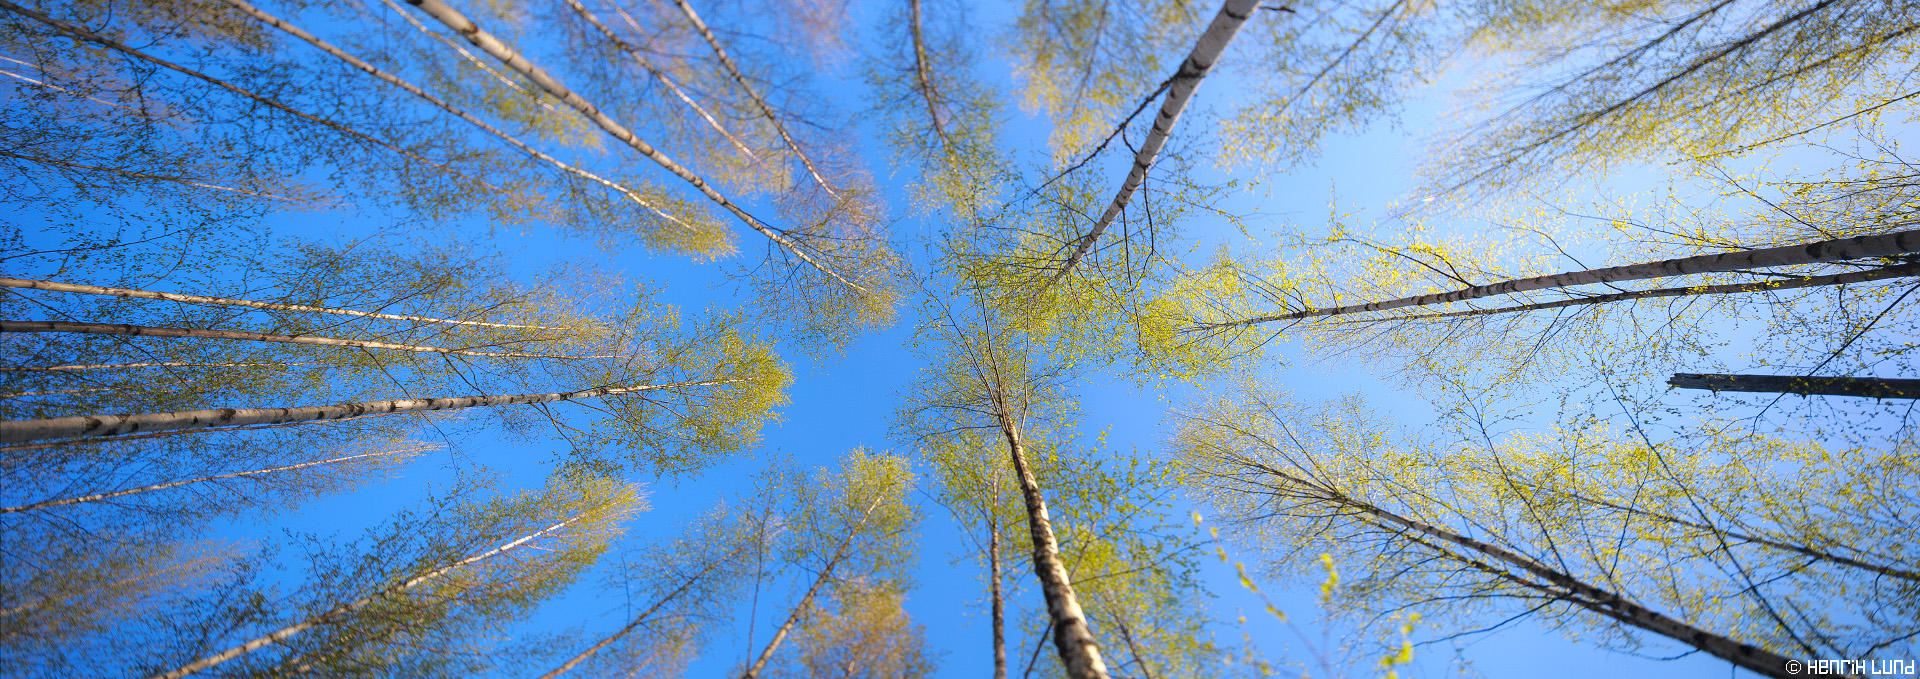 Spring in the birchforest - a view upwards. Tilted and shifted panorama. Norrby, Lappträsk, Finland, may 2015.